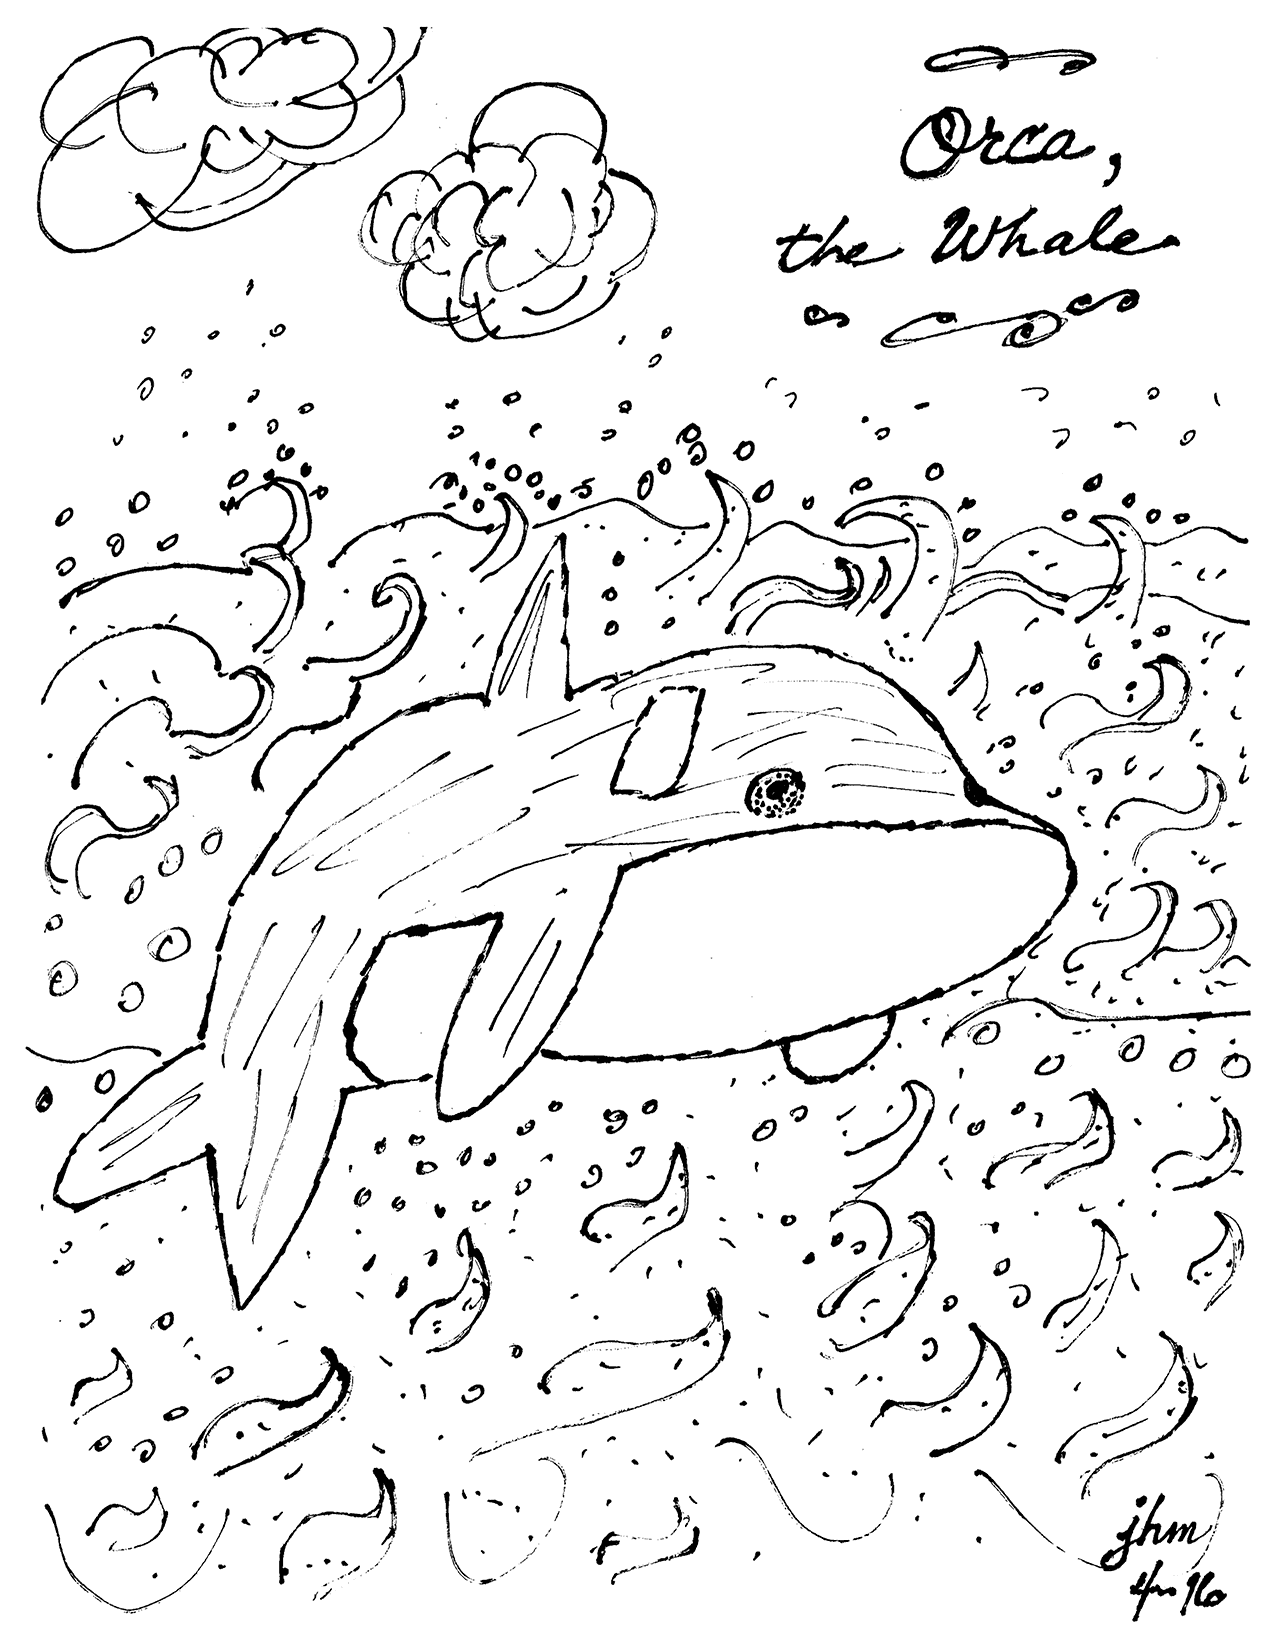 Orca the Whale